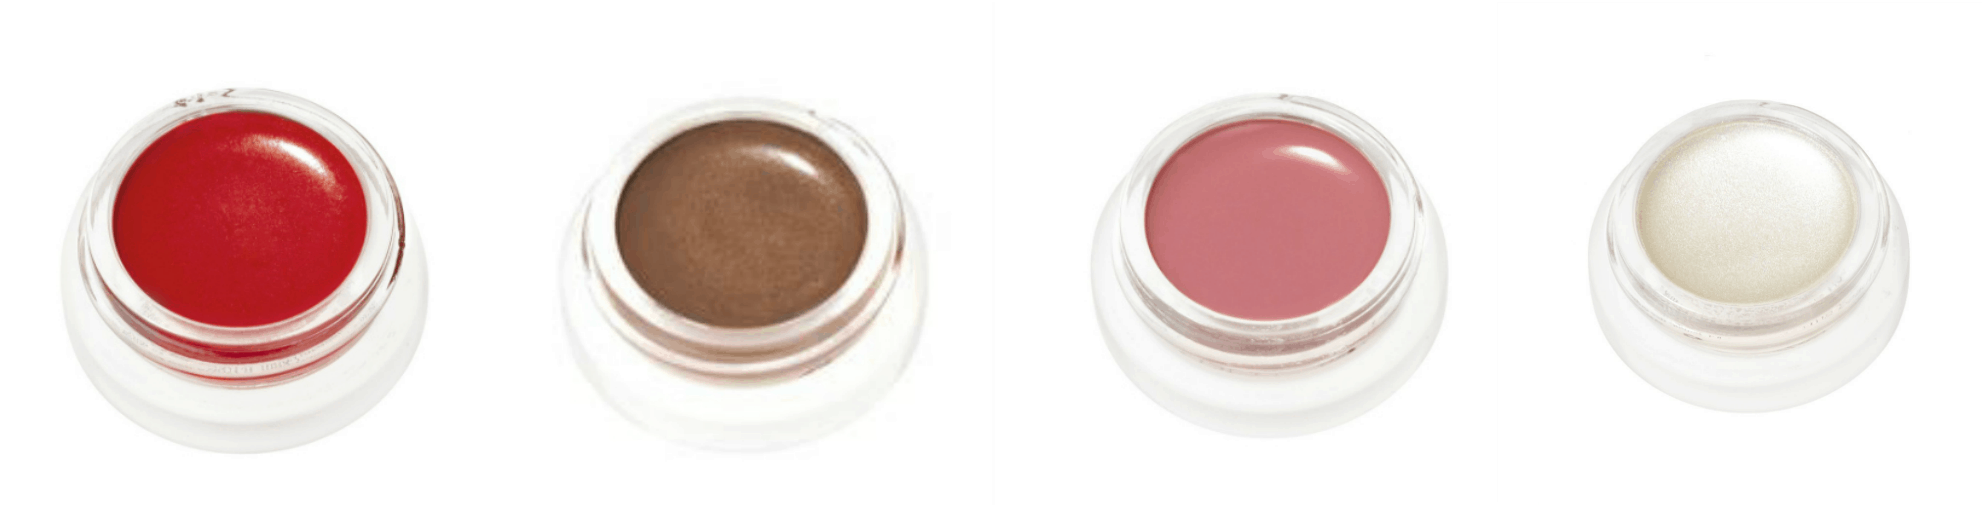 RMS Beauty favorites LIP2CHEEK in Beloved, Buriti Bronzer, LIP2CHEEK in Demure,